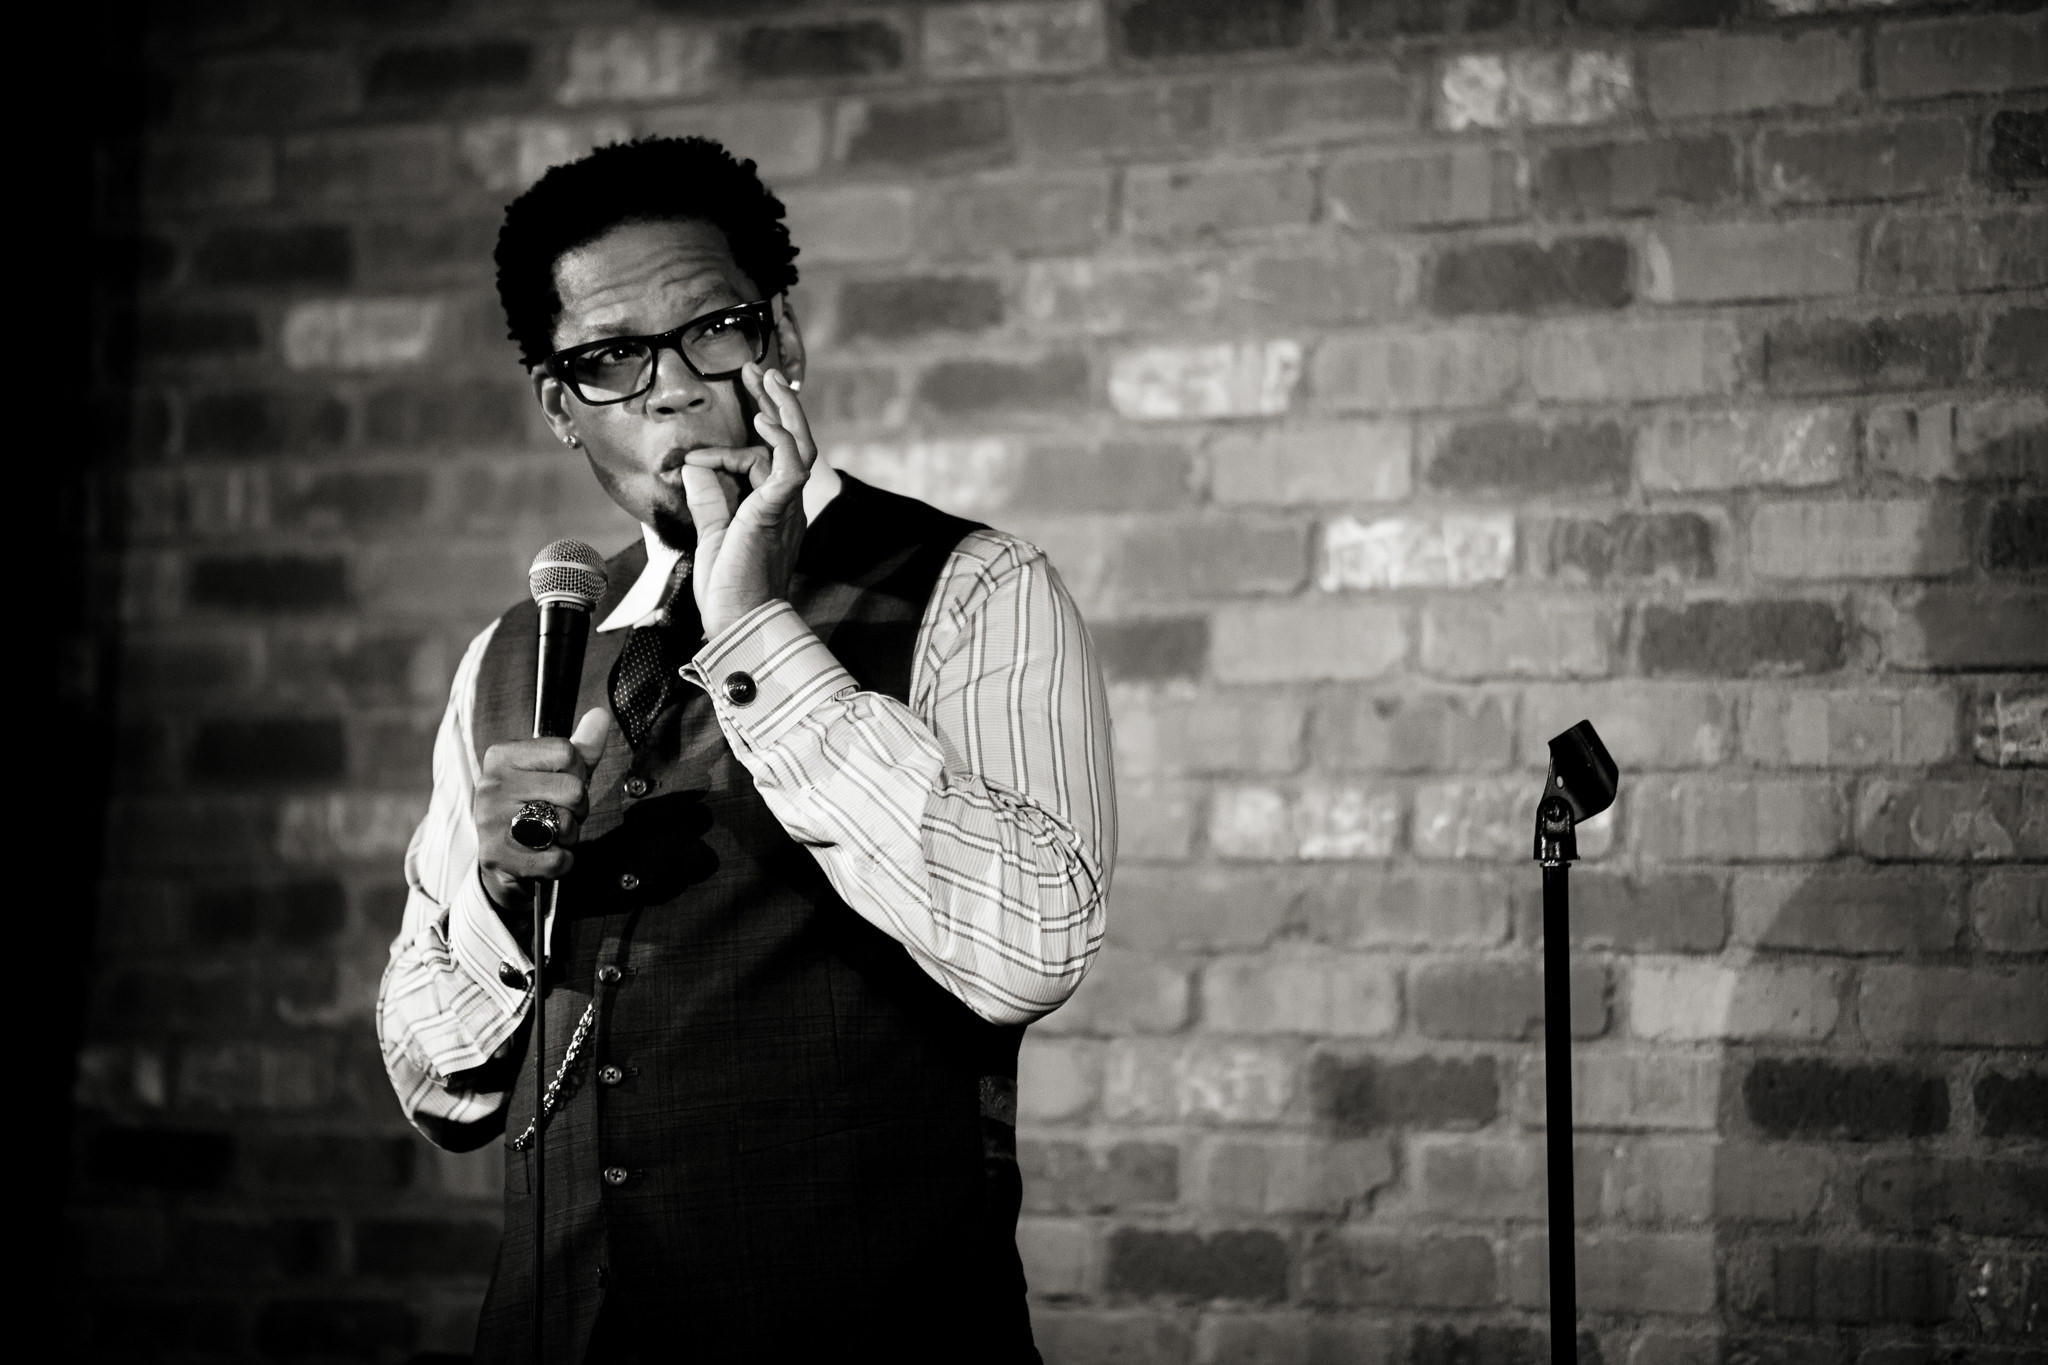 virginia-beach-funny-bone-comedy-set-dl-hughley.jpg